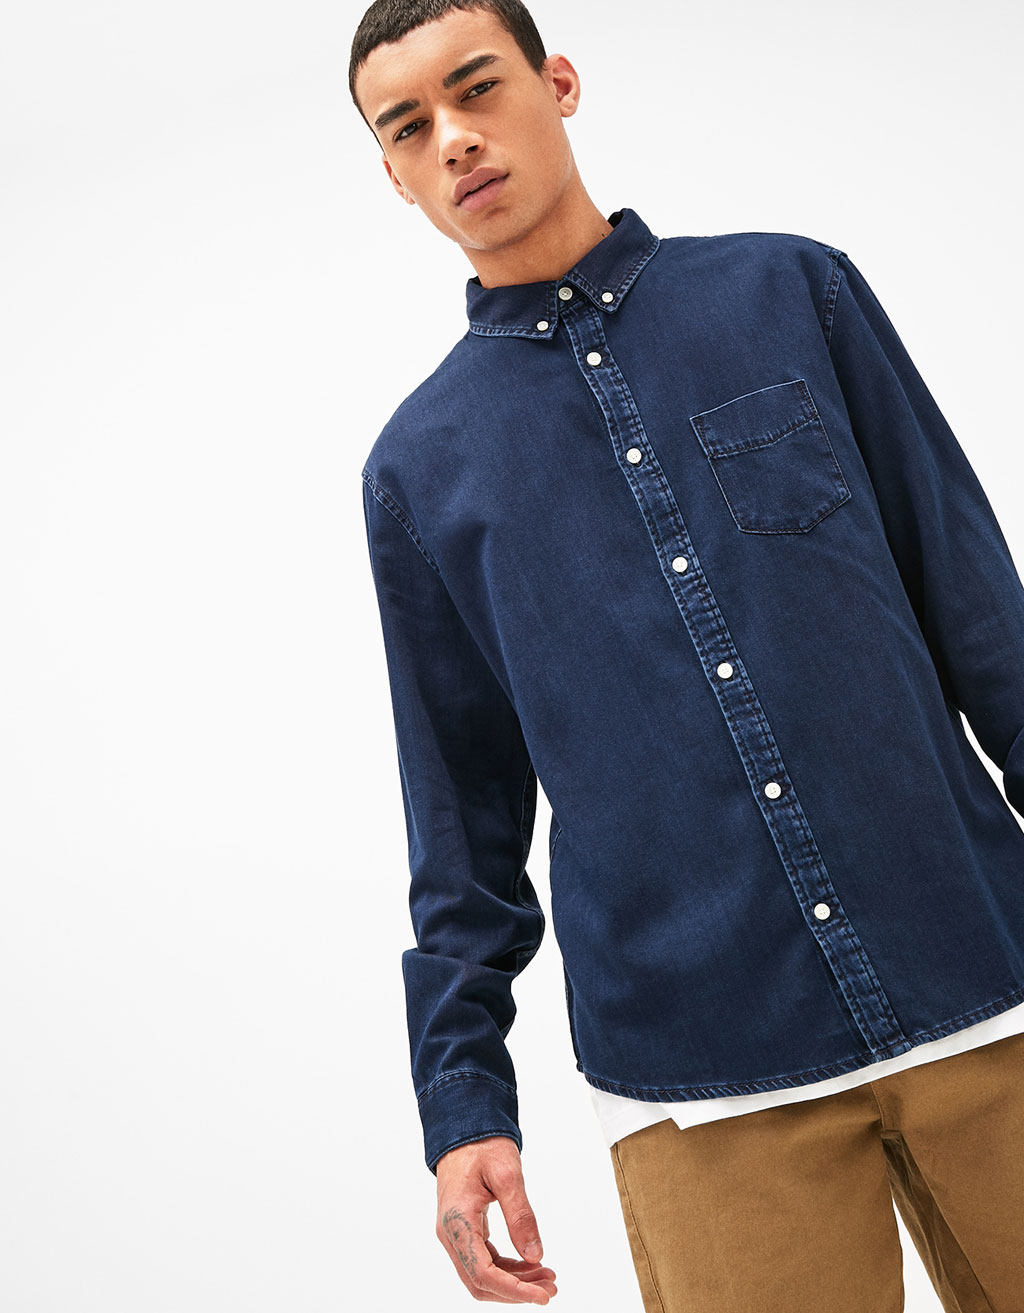 Denim shirt with pocket